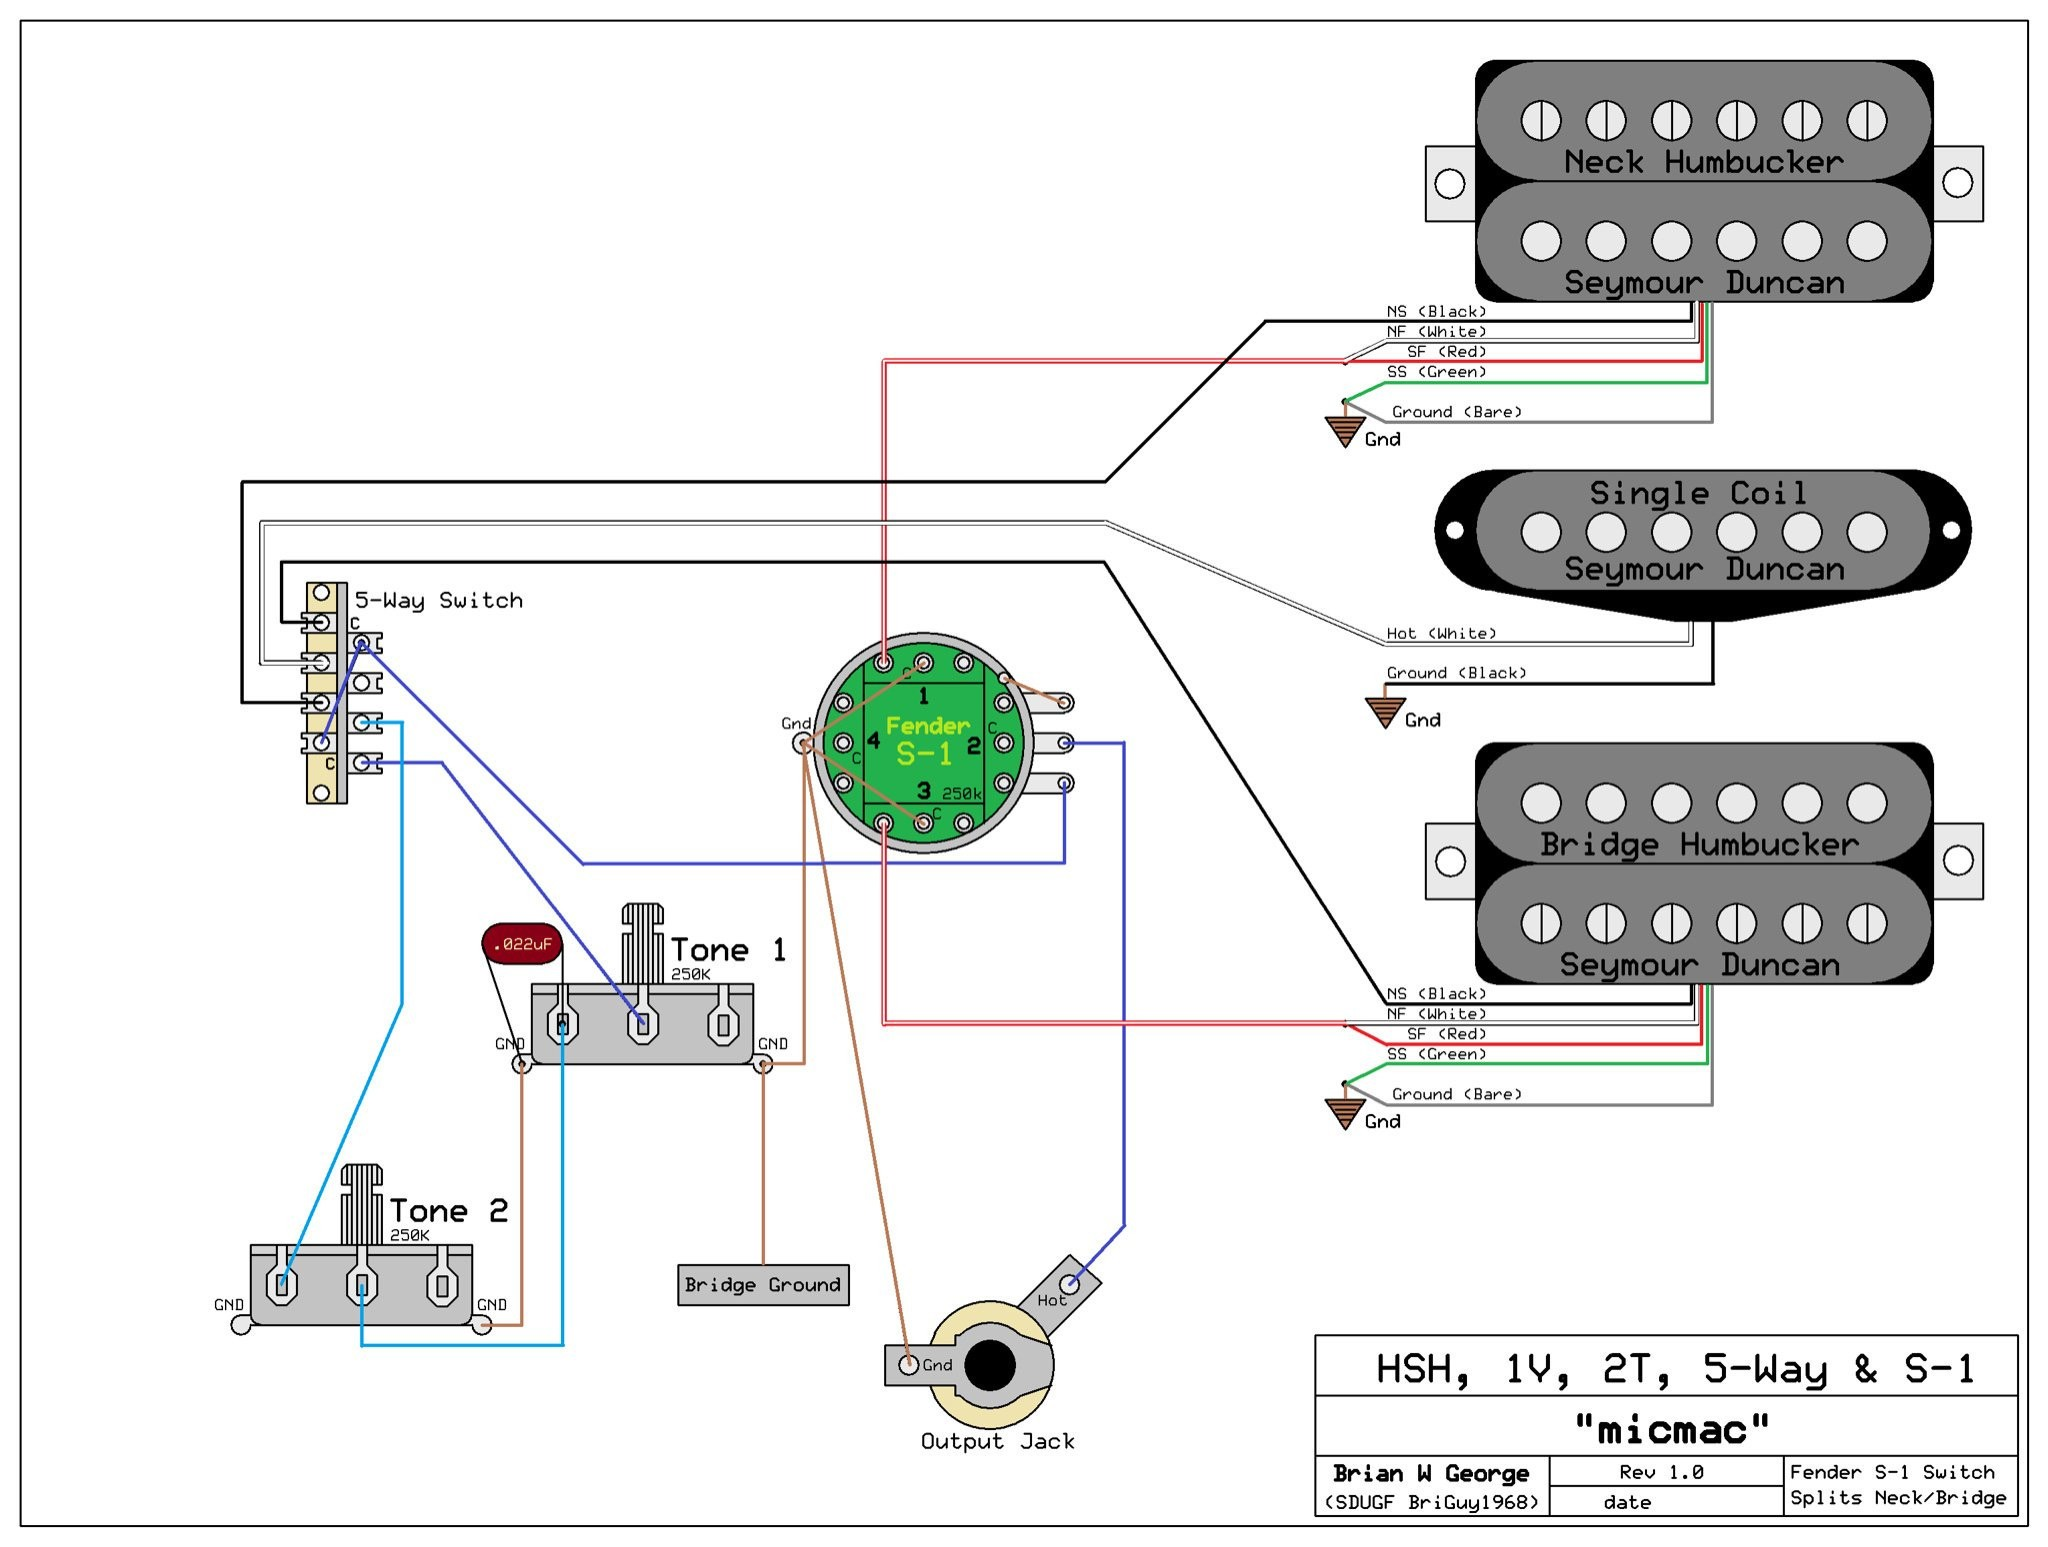 Wiring Diagram for Fender 5 Way Switch Refrence Wiring Diagram Fender 5 Way Switch Fresh Hsh